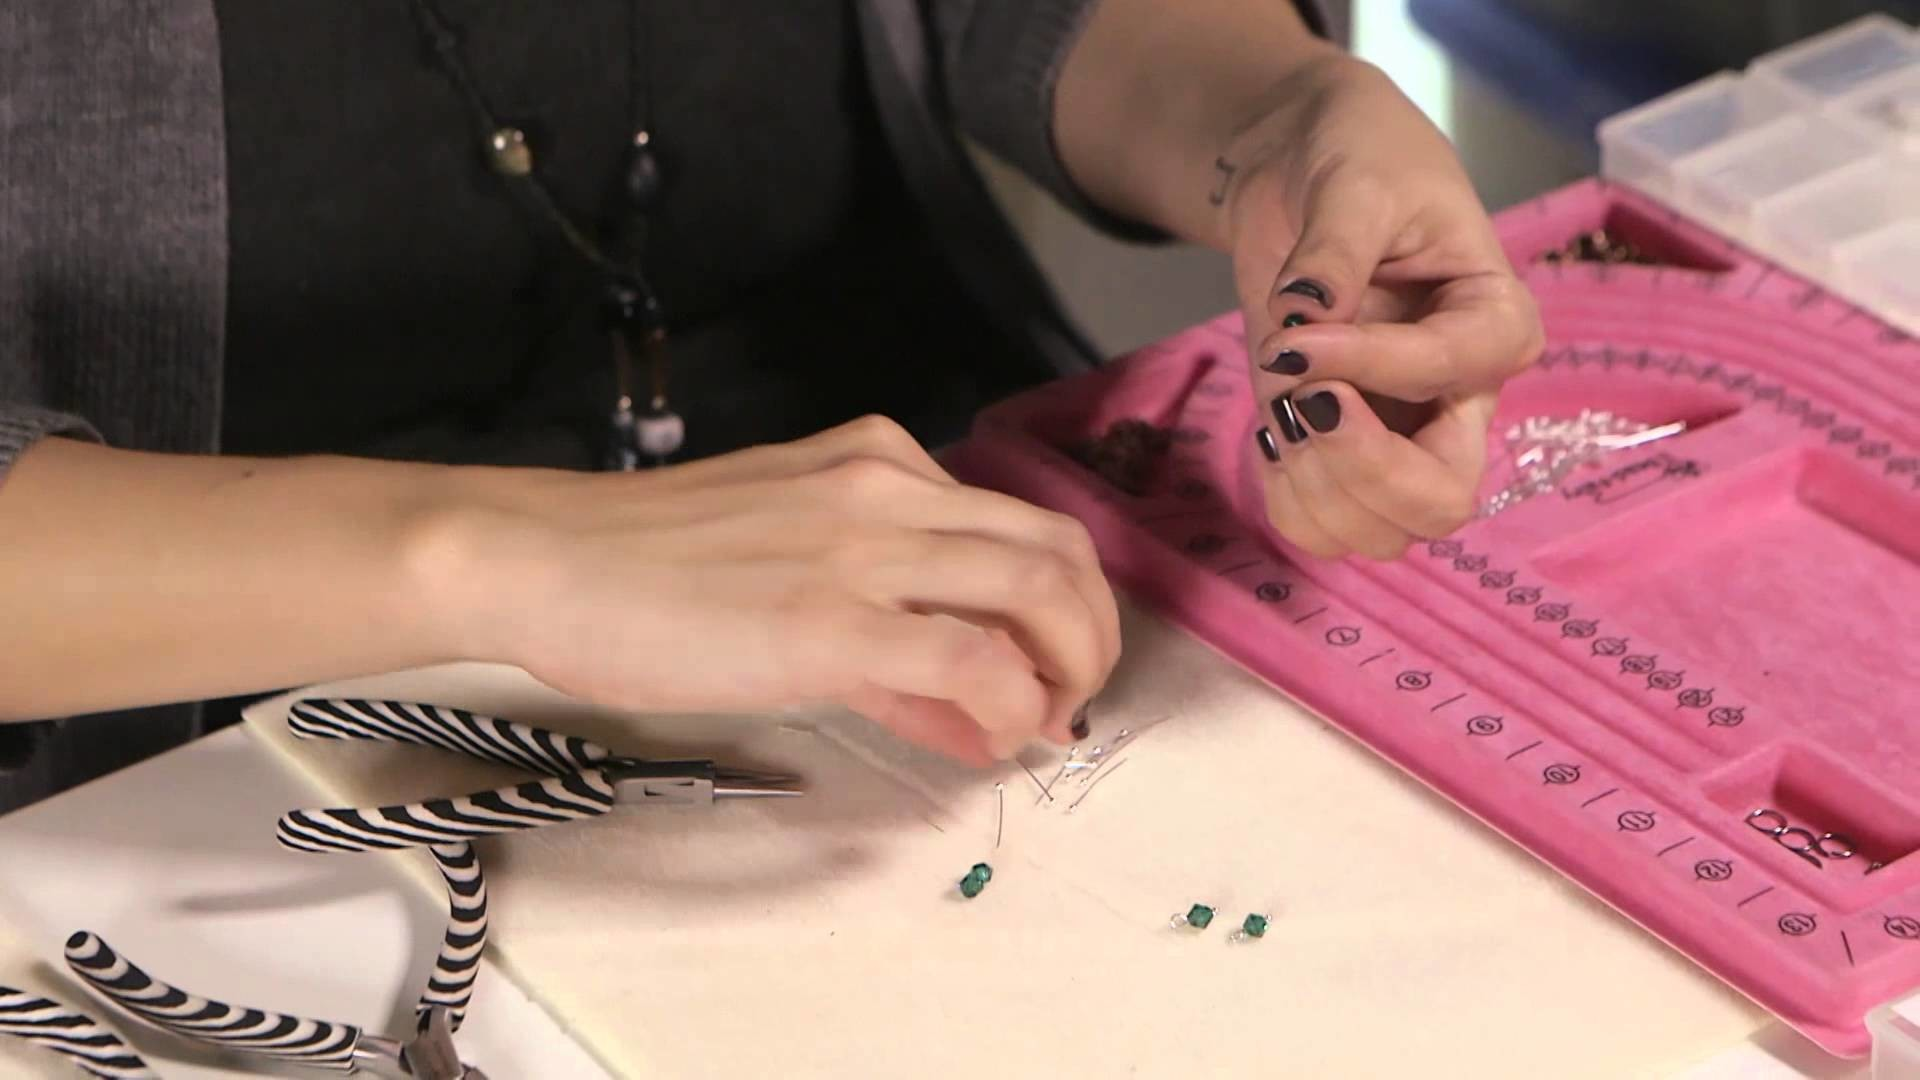 How to create a bling ring - step by step tutorial on how to make a bling ring